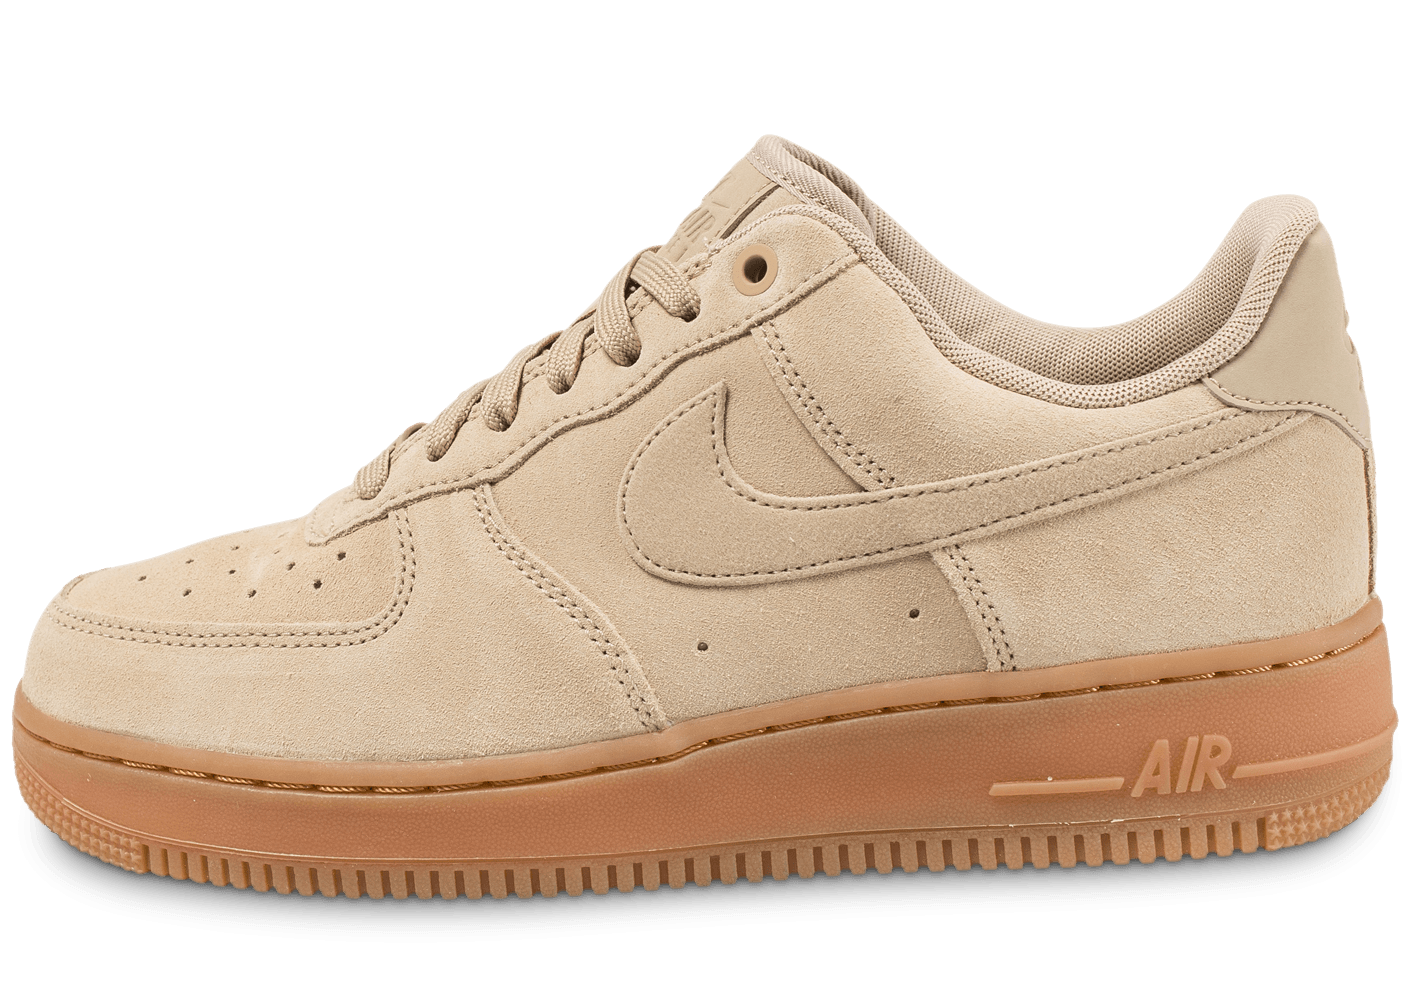 taille 40 2be79 b2282 vous propose une offre large et nike air force 1 basse ...